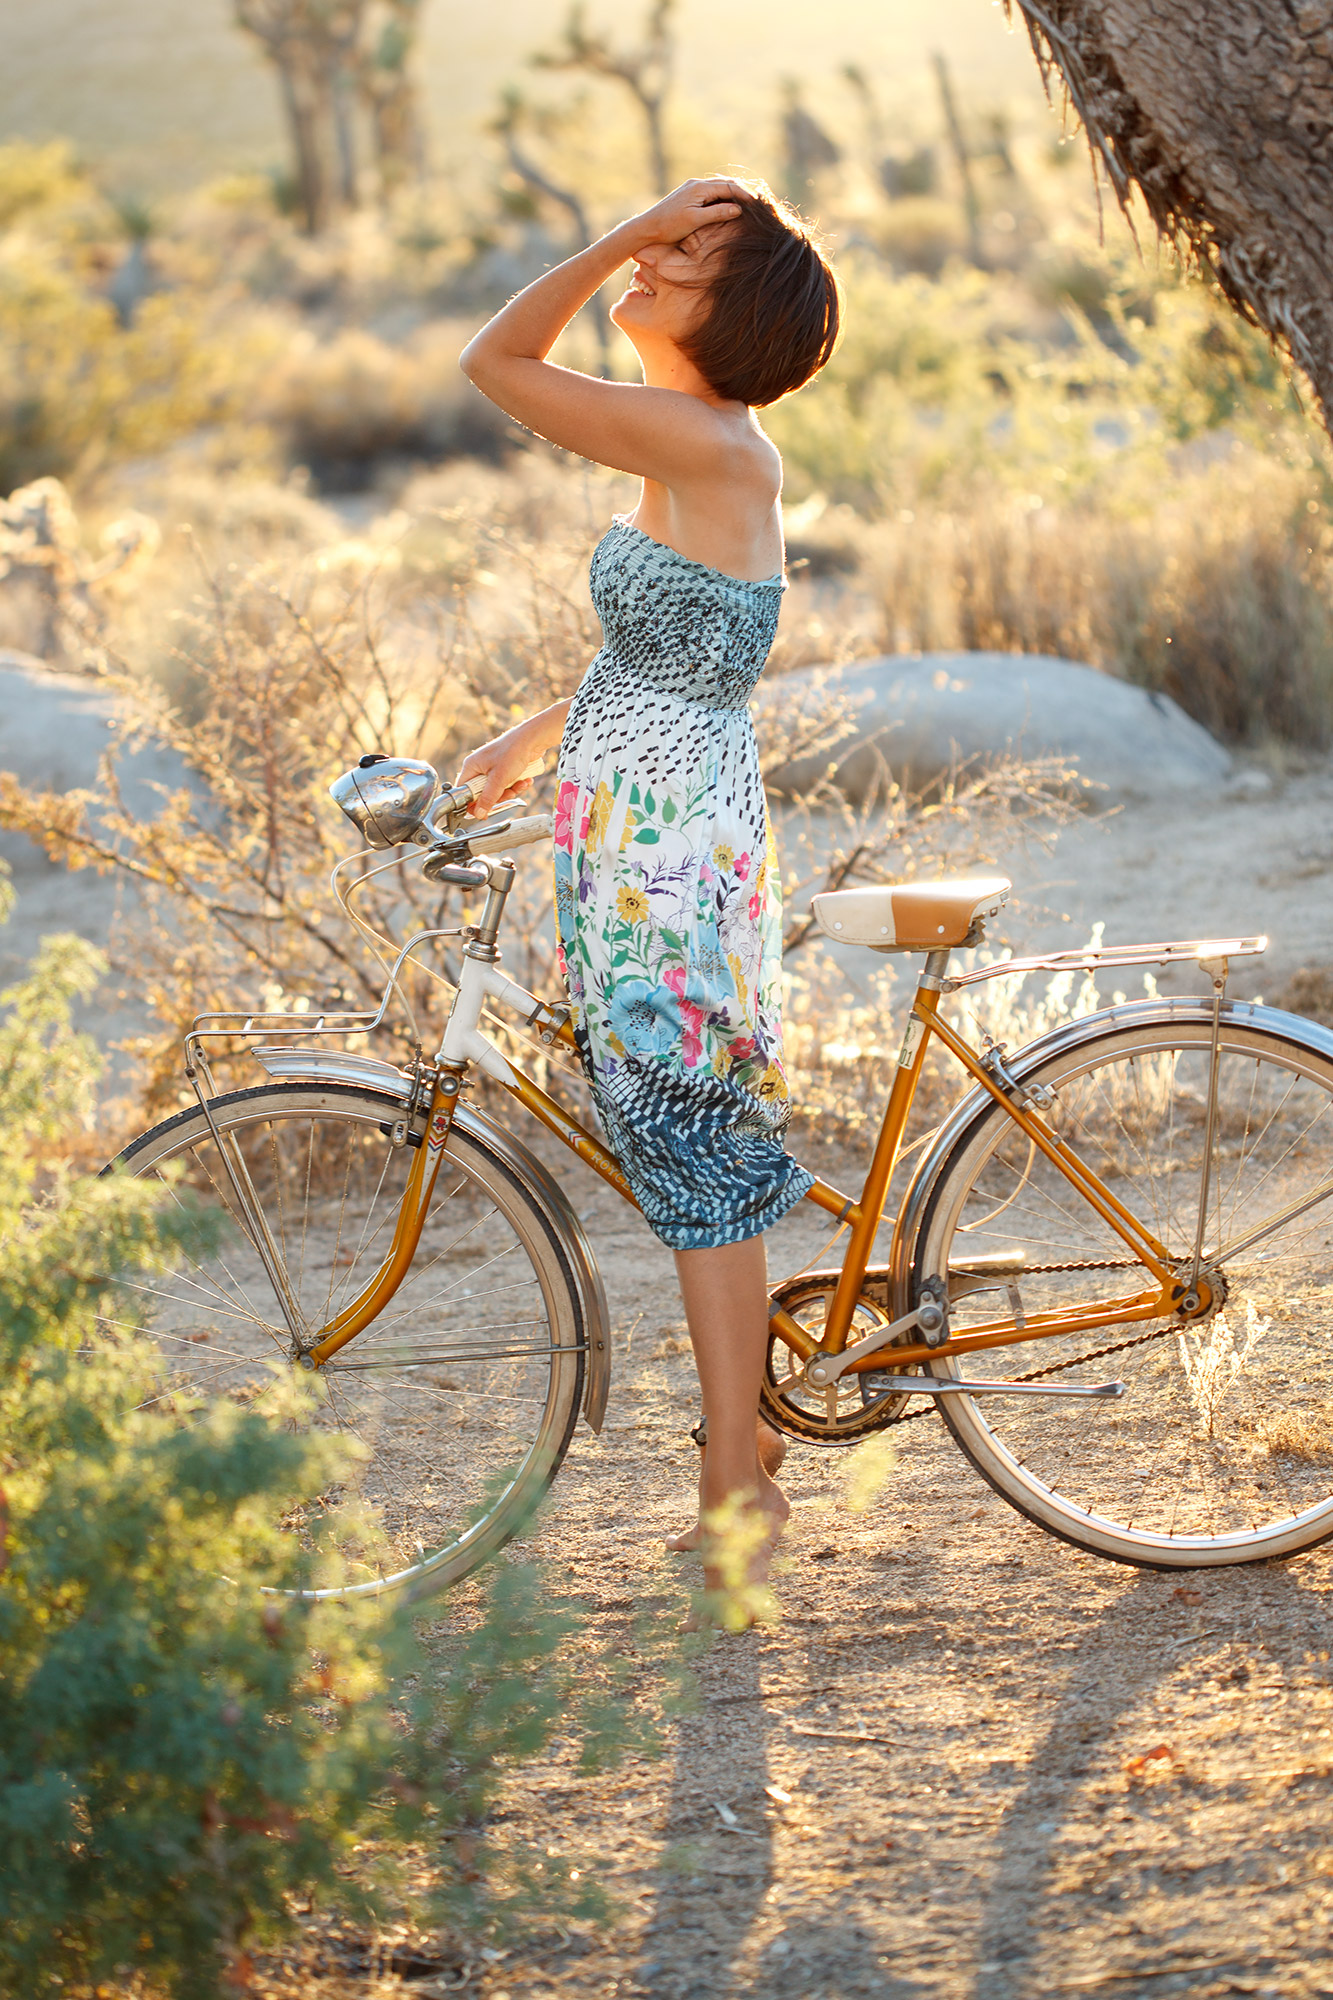 Lifestyle-024-desert-sunlight-woman-bike